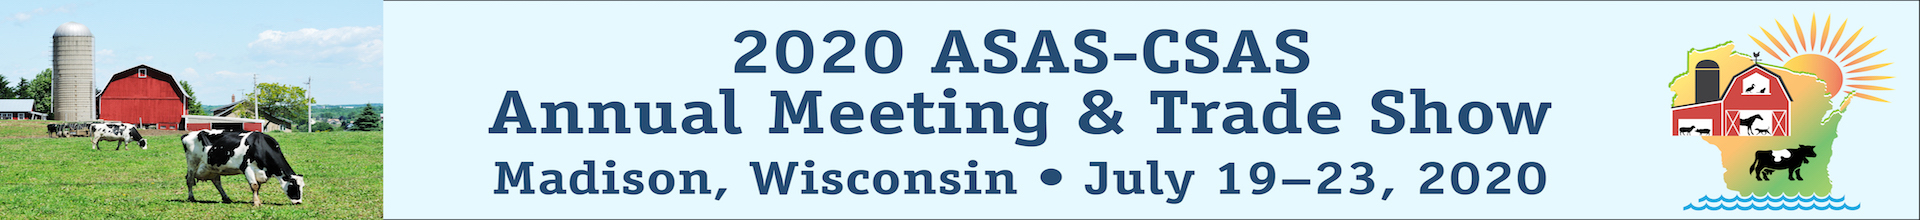 2020 ASAS-CSAS Annual Meeting and Trade Show Event Banner